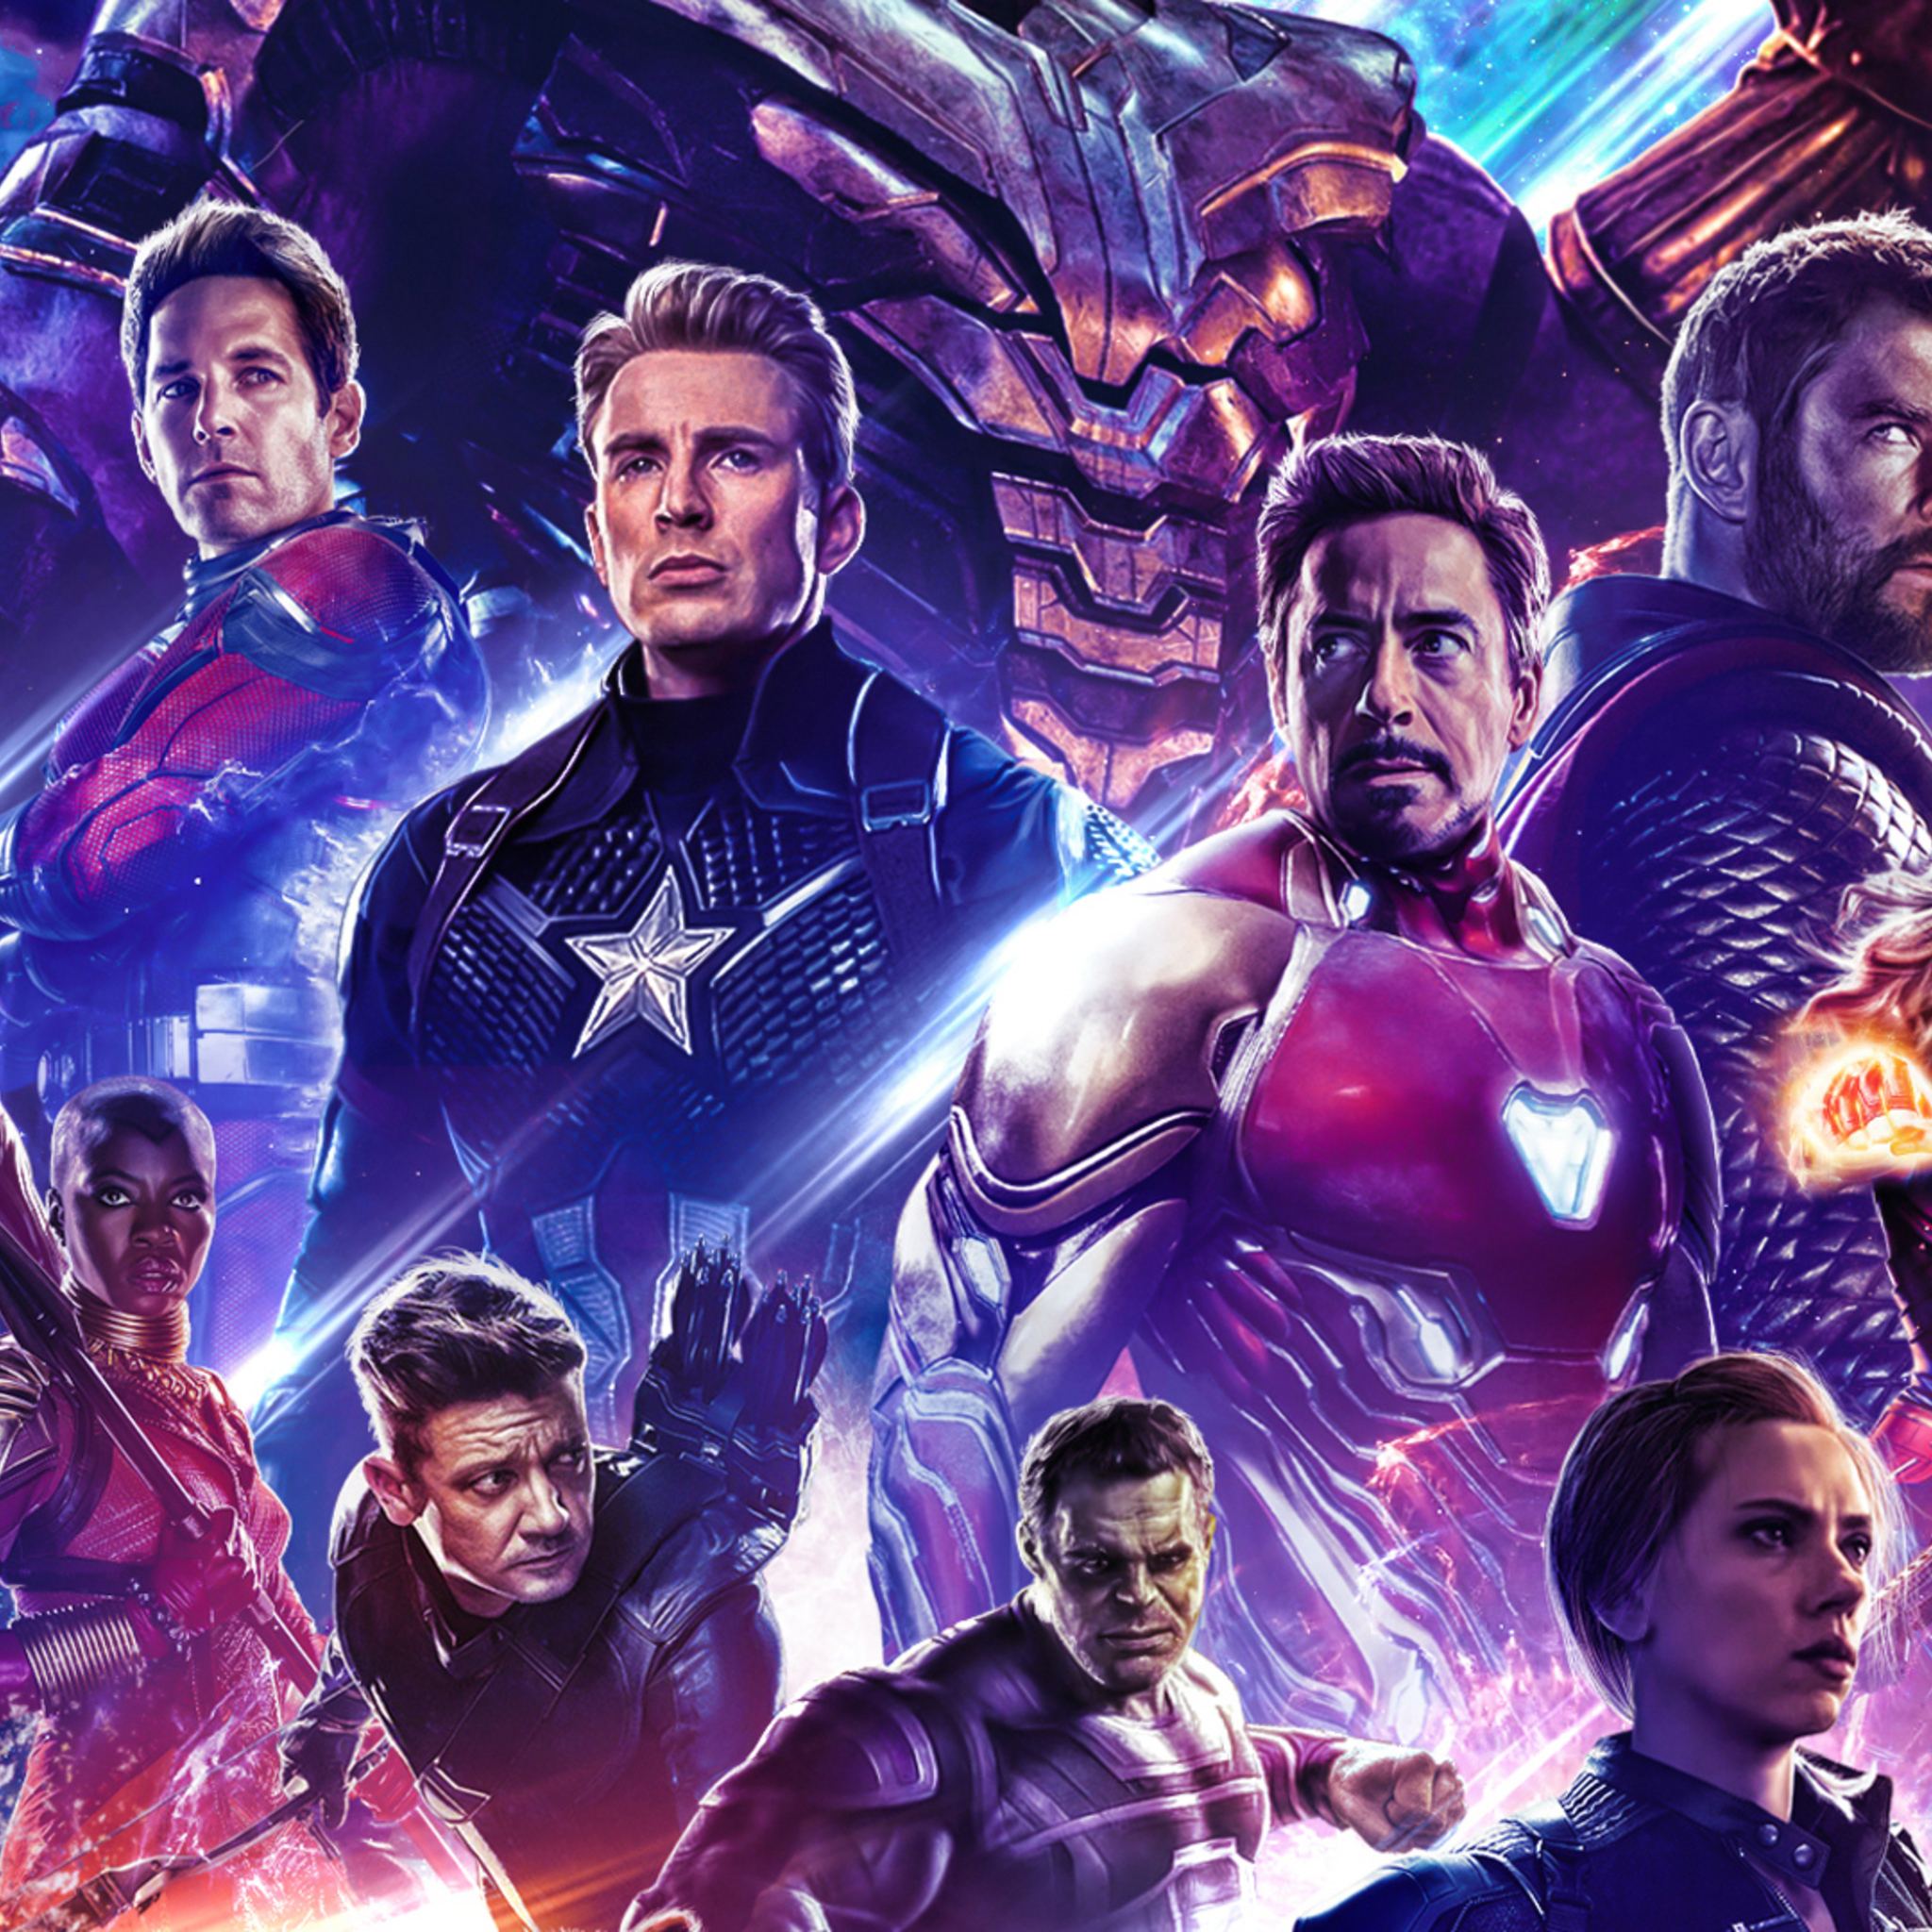 2048x2048 Poster Avengers Endgame 2019 Ipad Air HD 4k